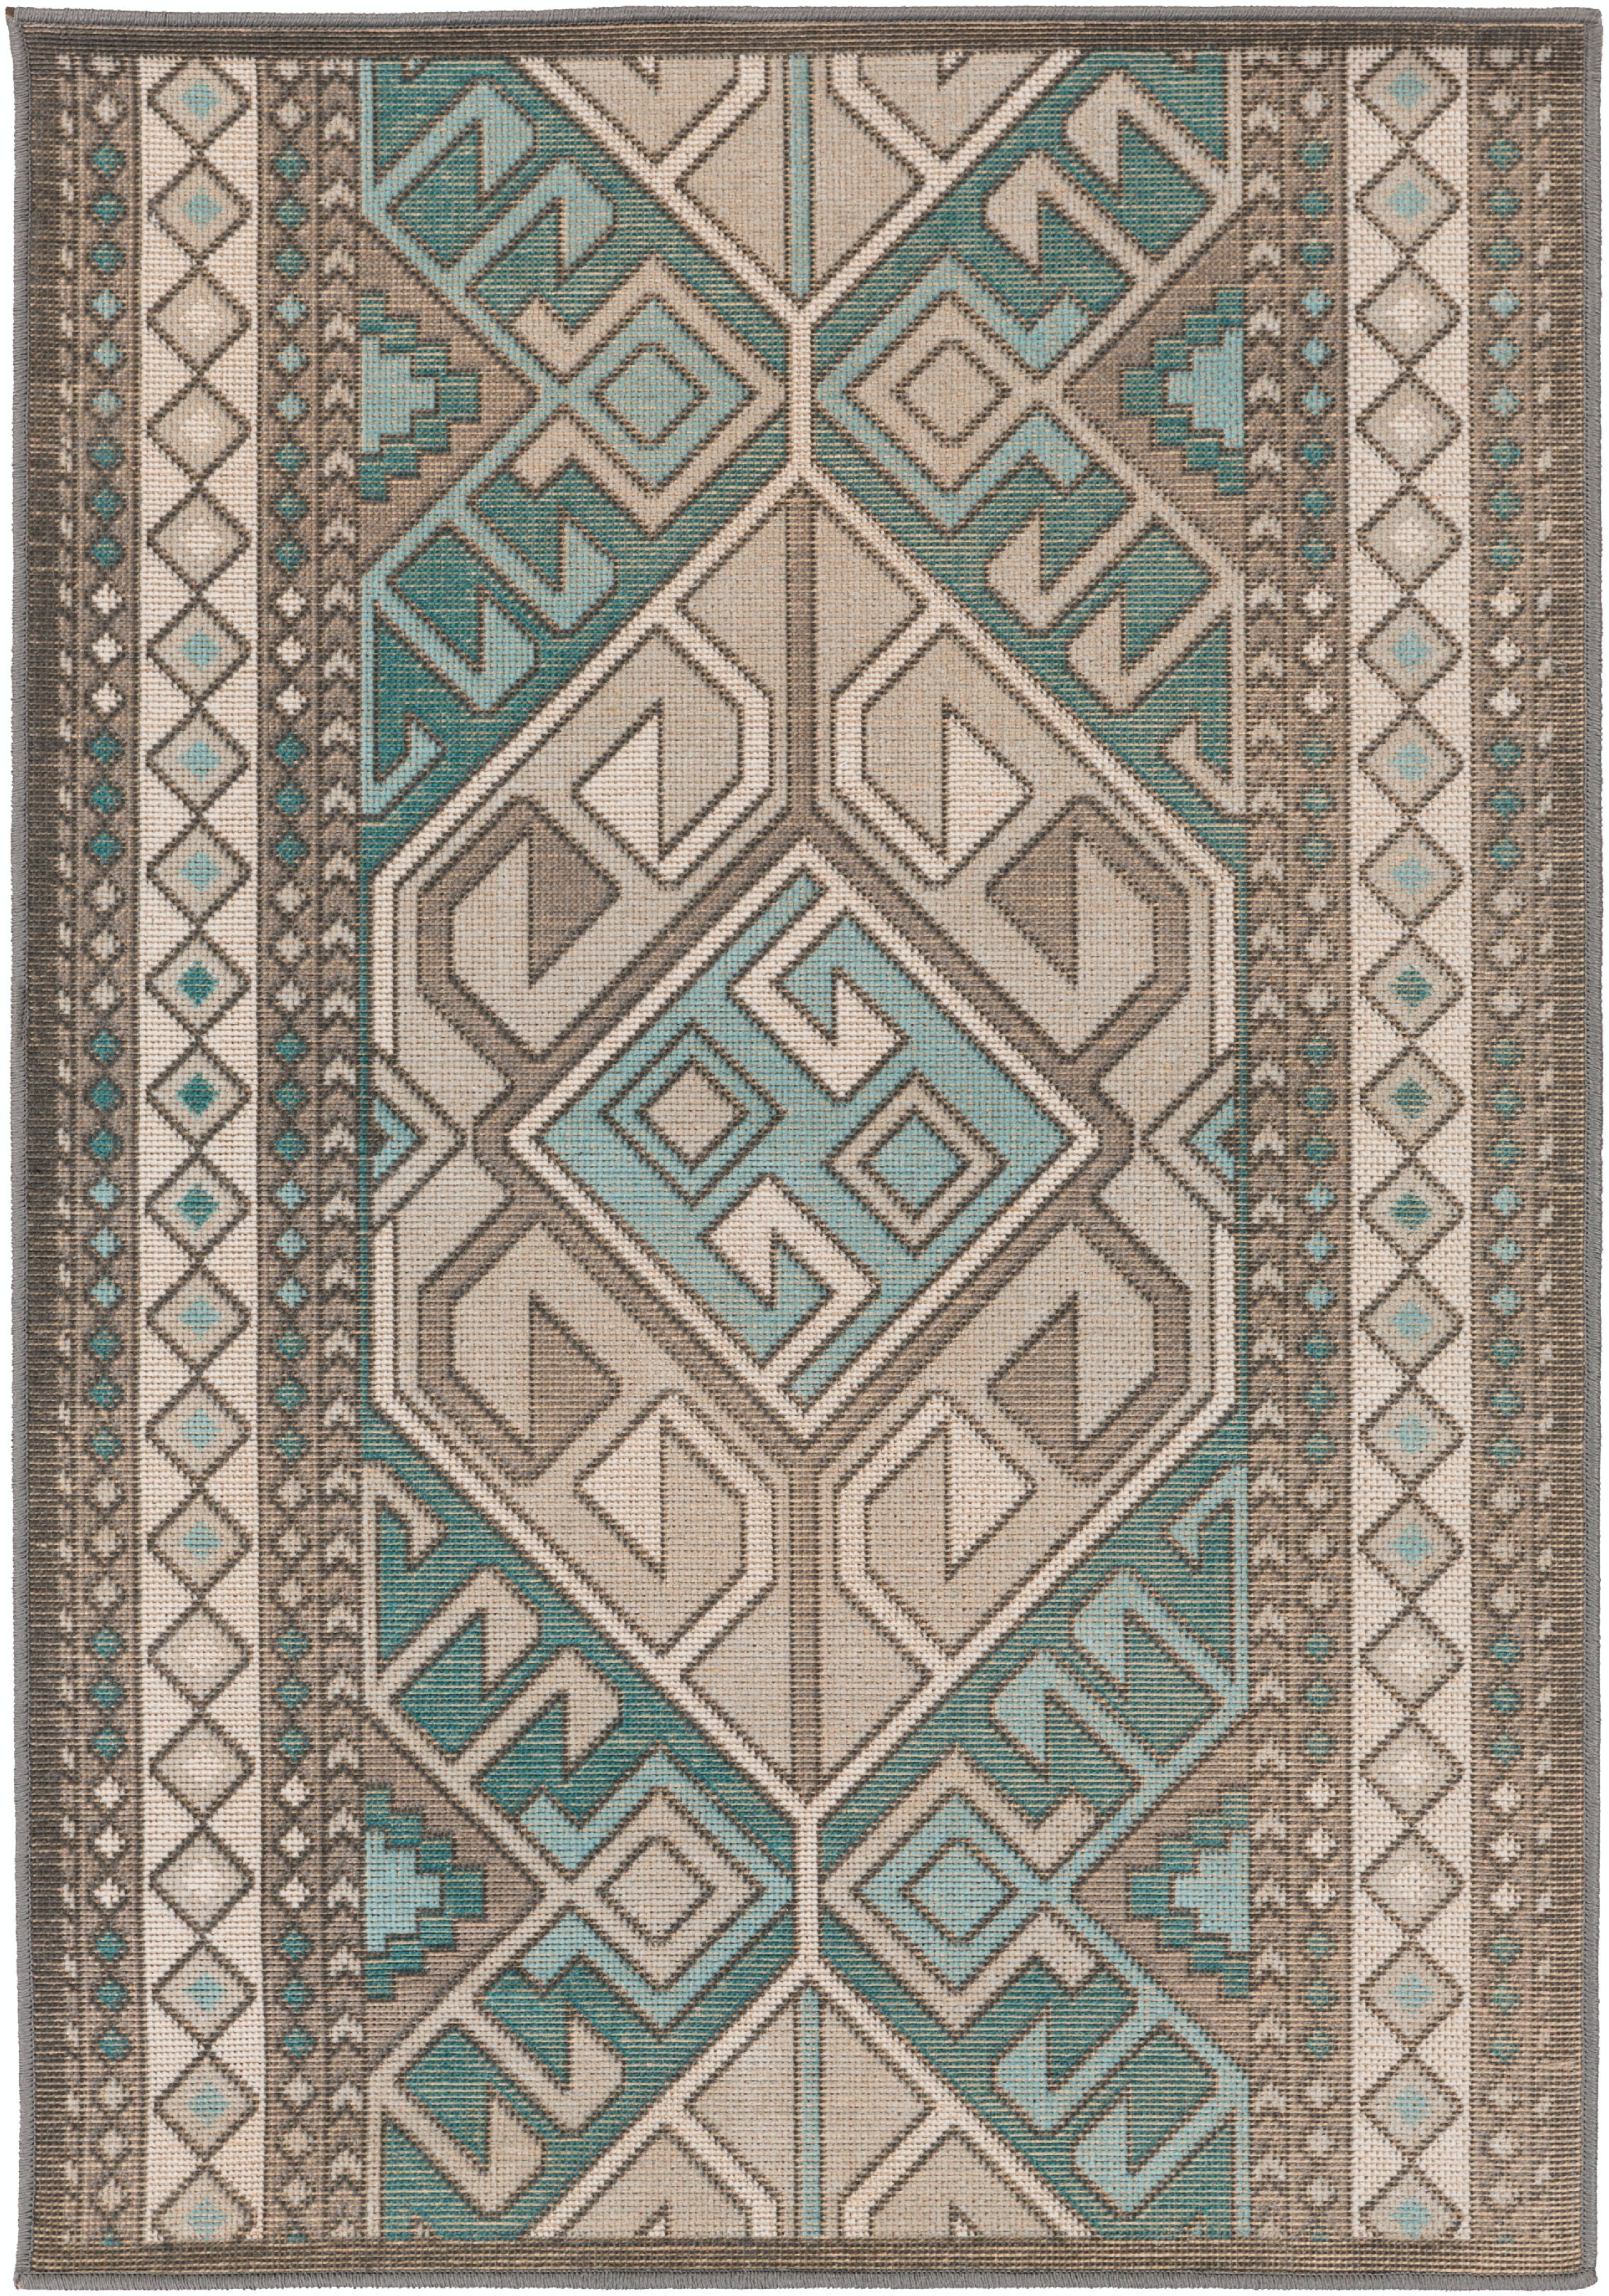 Surya Floor Coverings Mavrick 2 2 X 4 Area Rug Mav7005 224 Wells